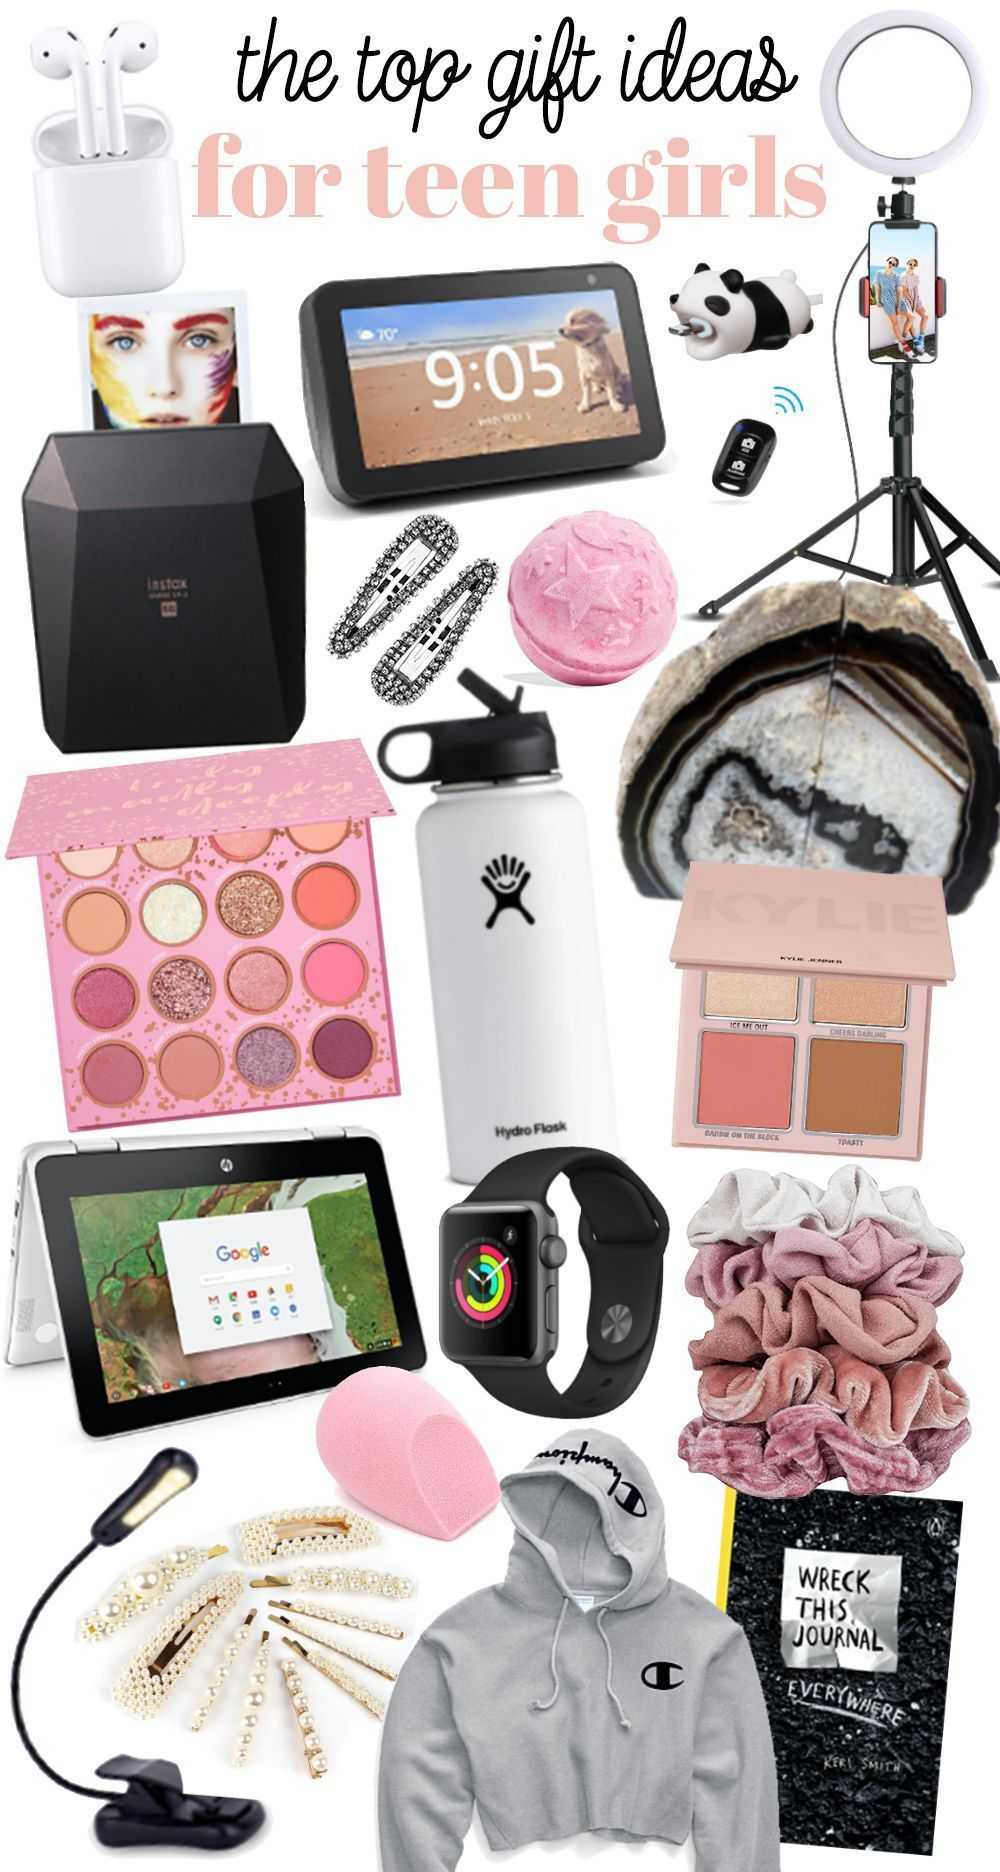 Pin Auf Gift Ideas For Teens